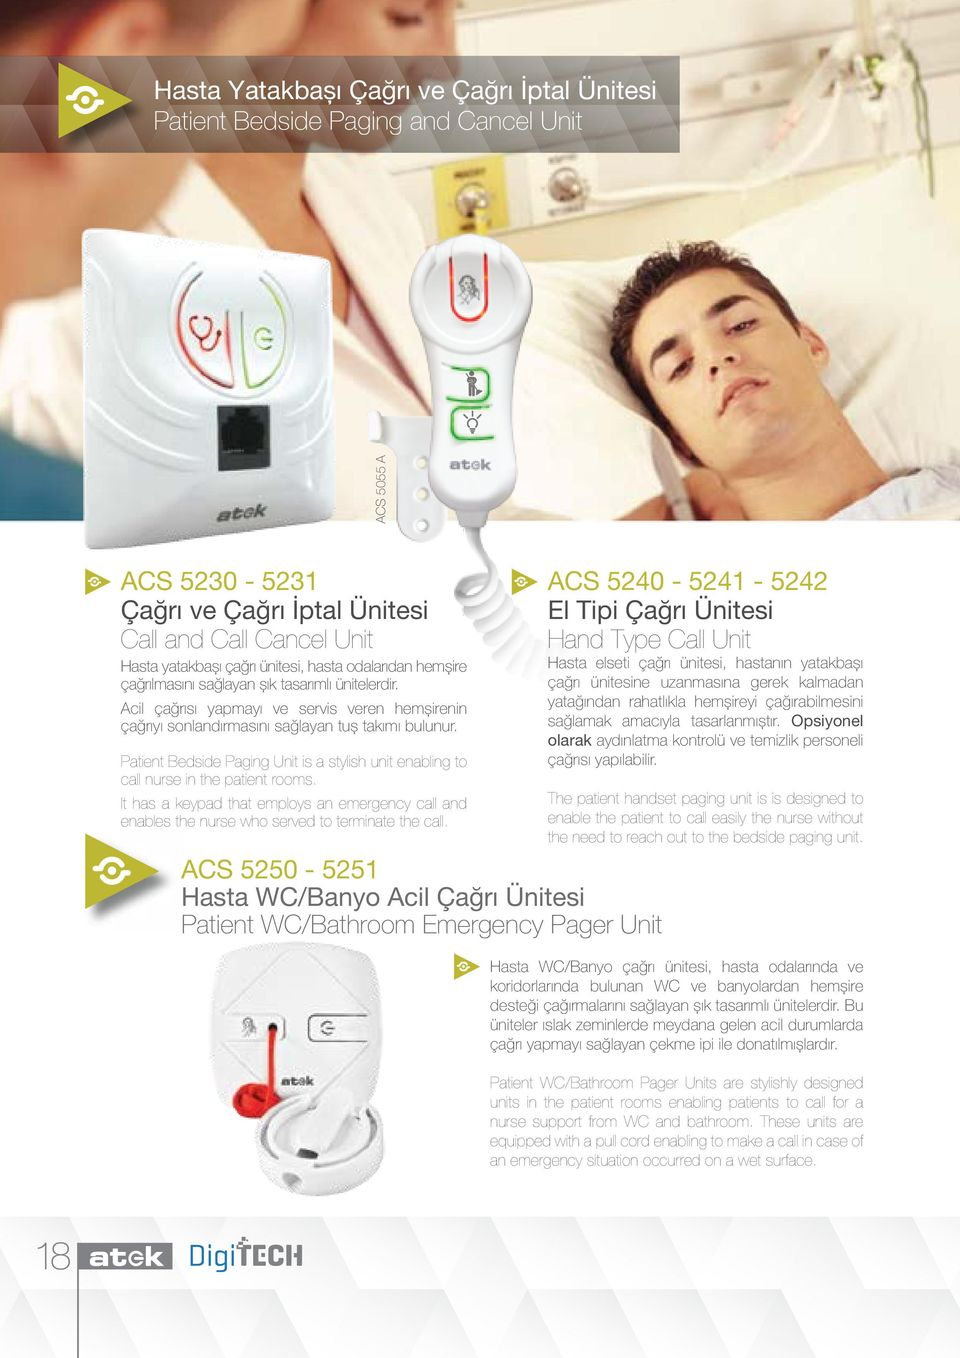 Patient Bedside Paging Unit is a stylish unit enabling to call nurse in the patient rooms. It has a keypad that employs an emergency call and enables the nurse who served to terminate the call.